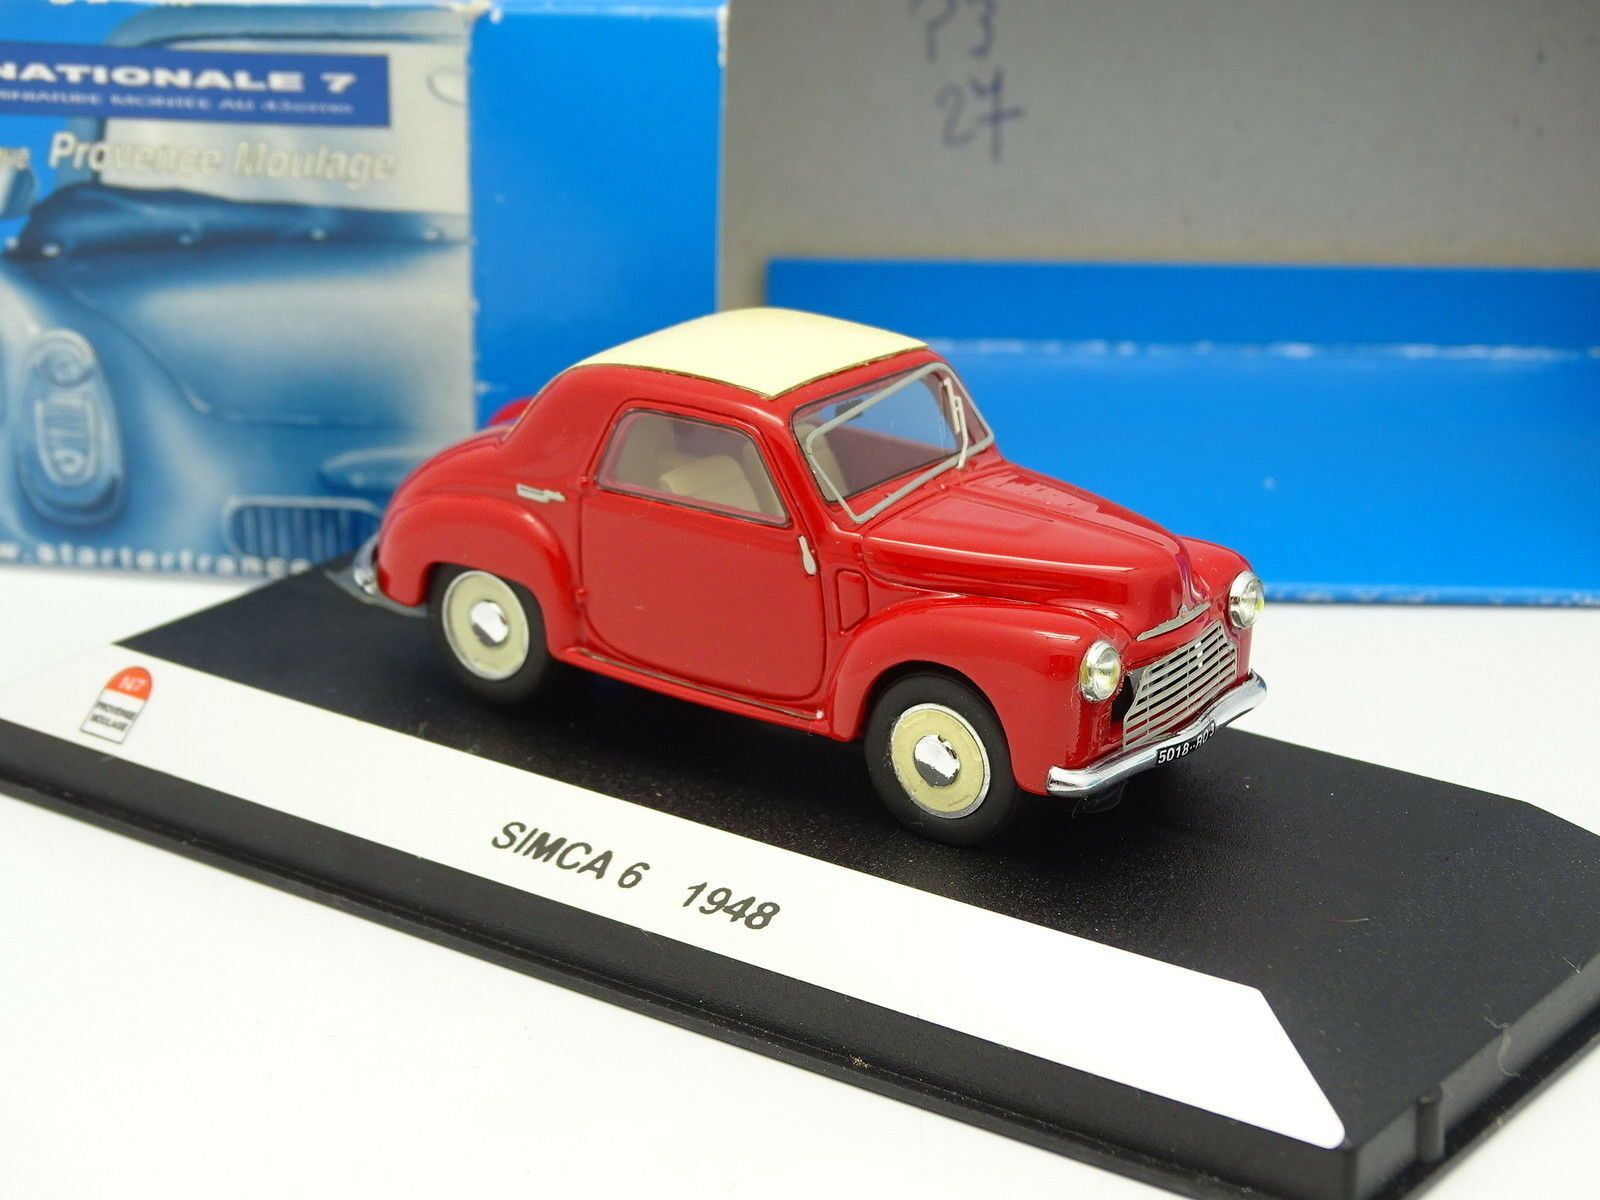 Starter n7 1 43 - provence resin simca 6 1948 red